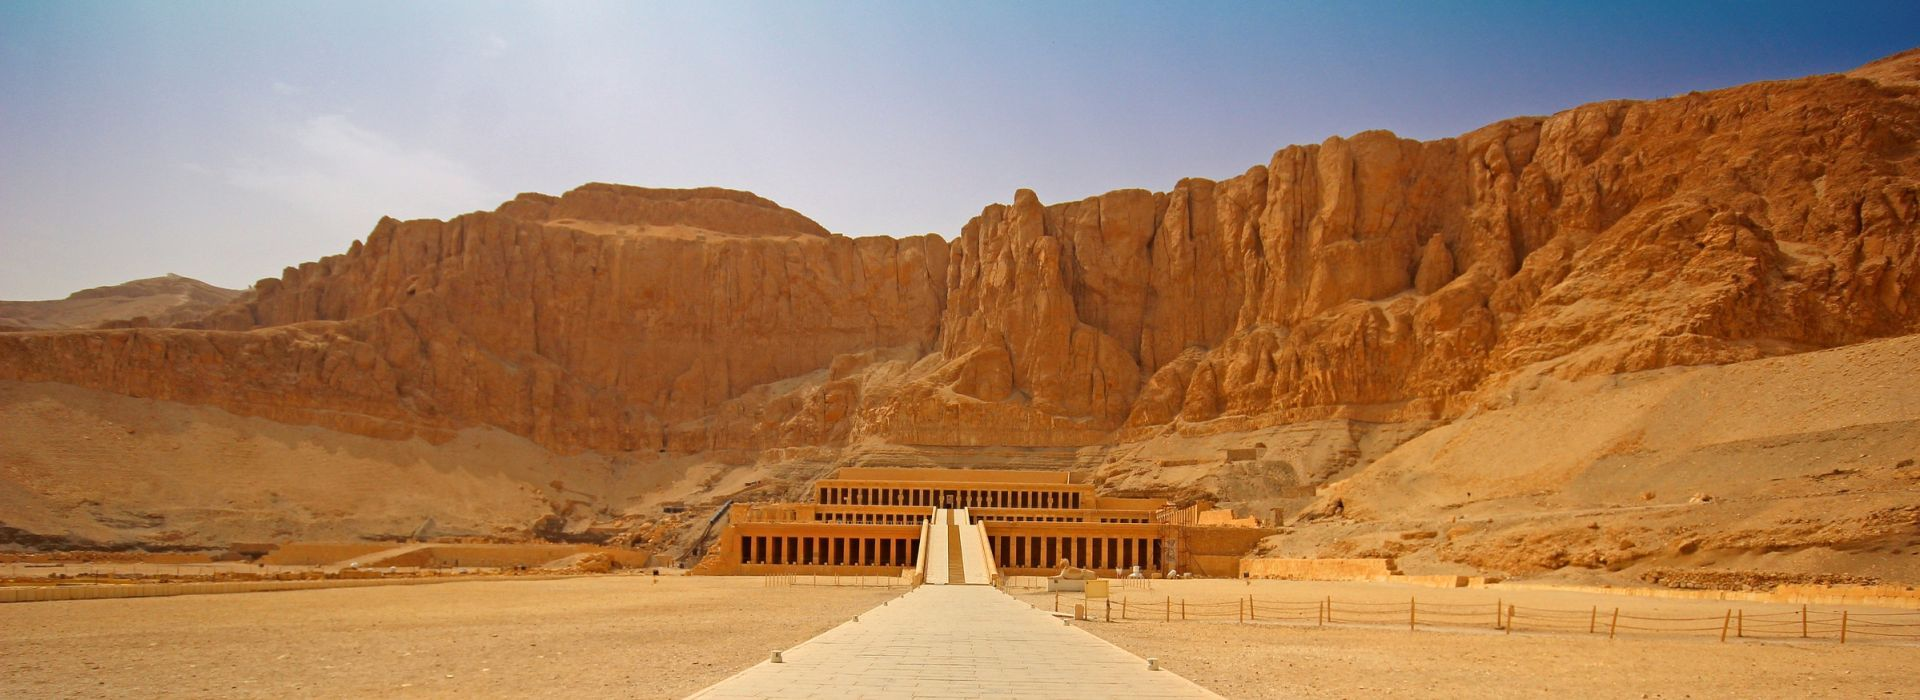 Deserts and canyons Tours in Cairo